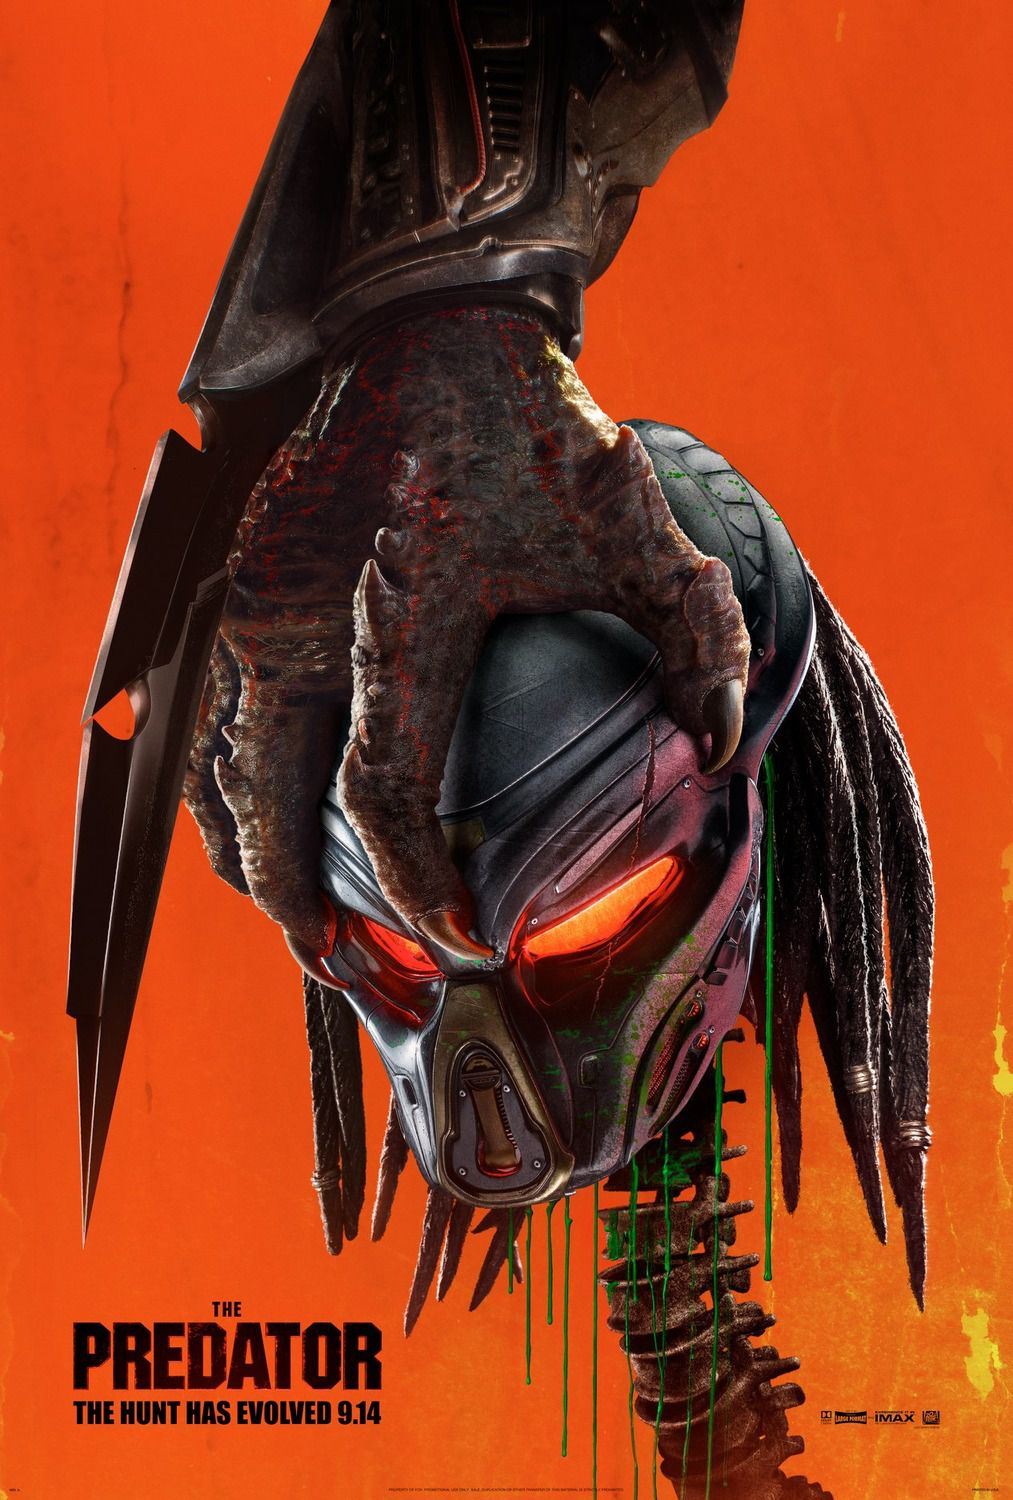 The Predator (2018) - even the alien hunters have their own predator - Cast: Boyd Holbrook, Olivia Munn, Jacob Tremblay, Trevante Rhodes - scifi alien hunter film saga poster